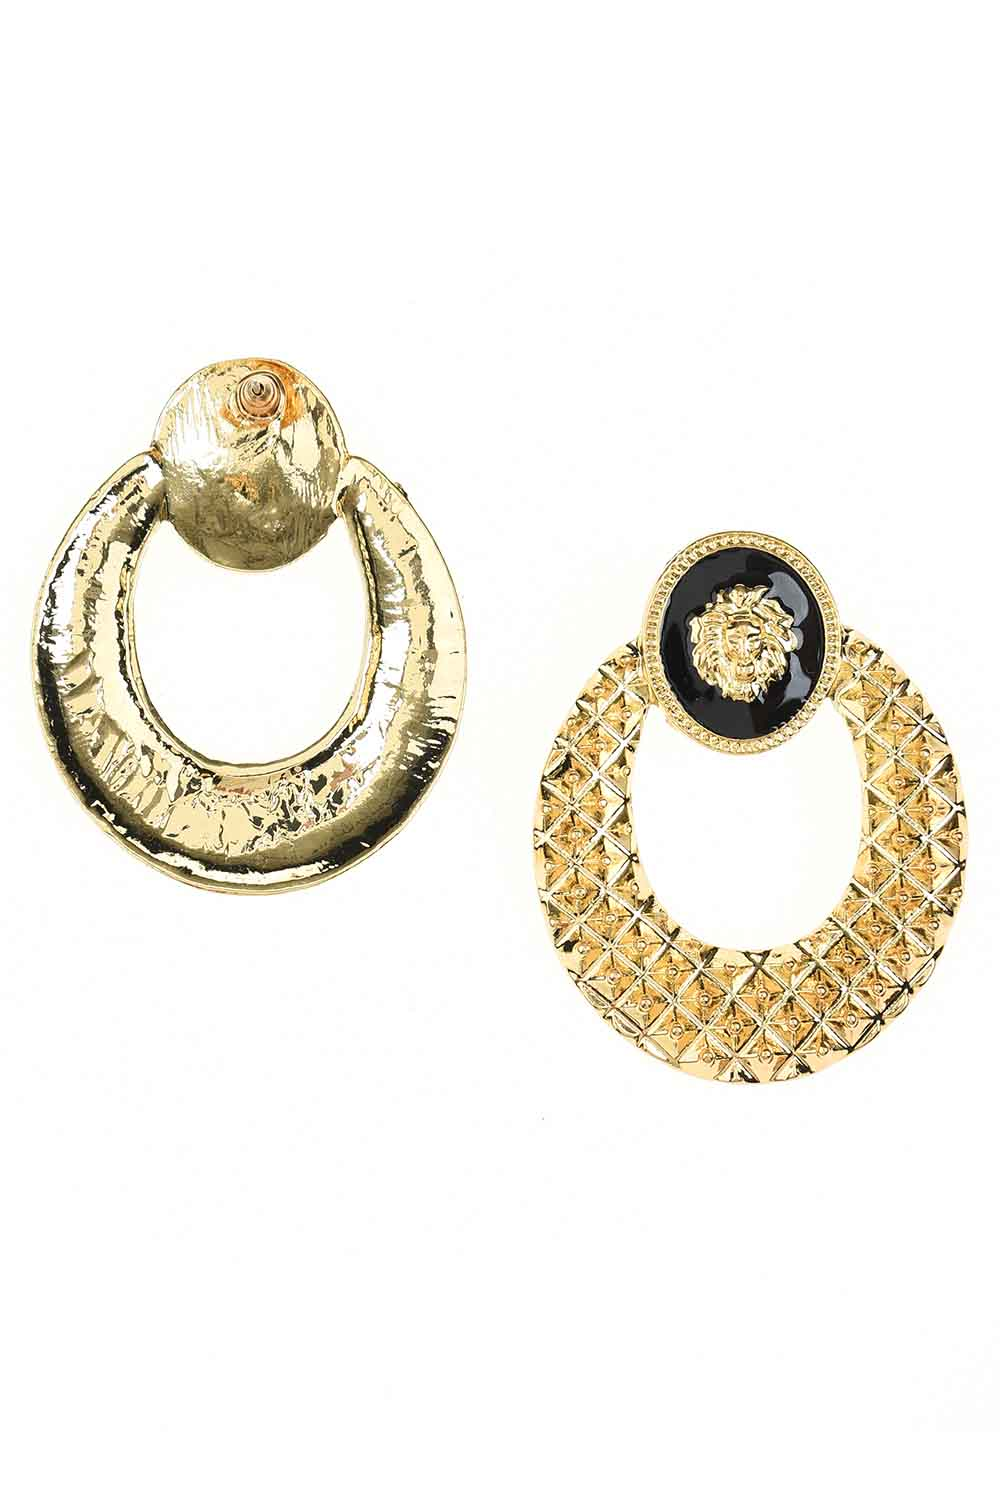 MIZALLE Lion Figured Earrings (St) (1)